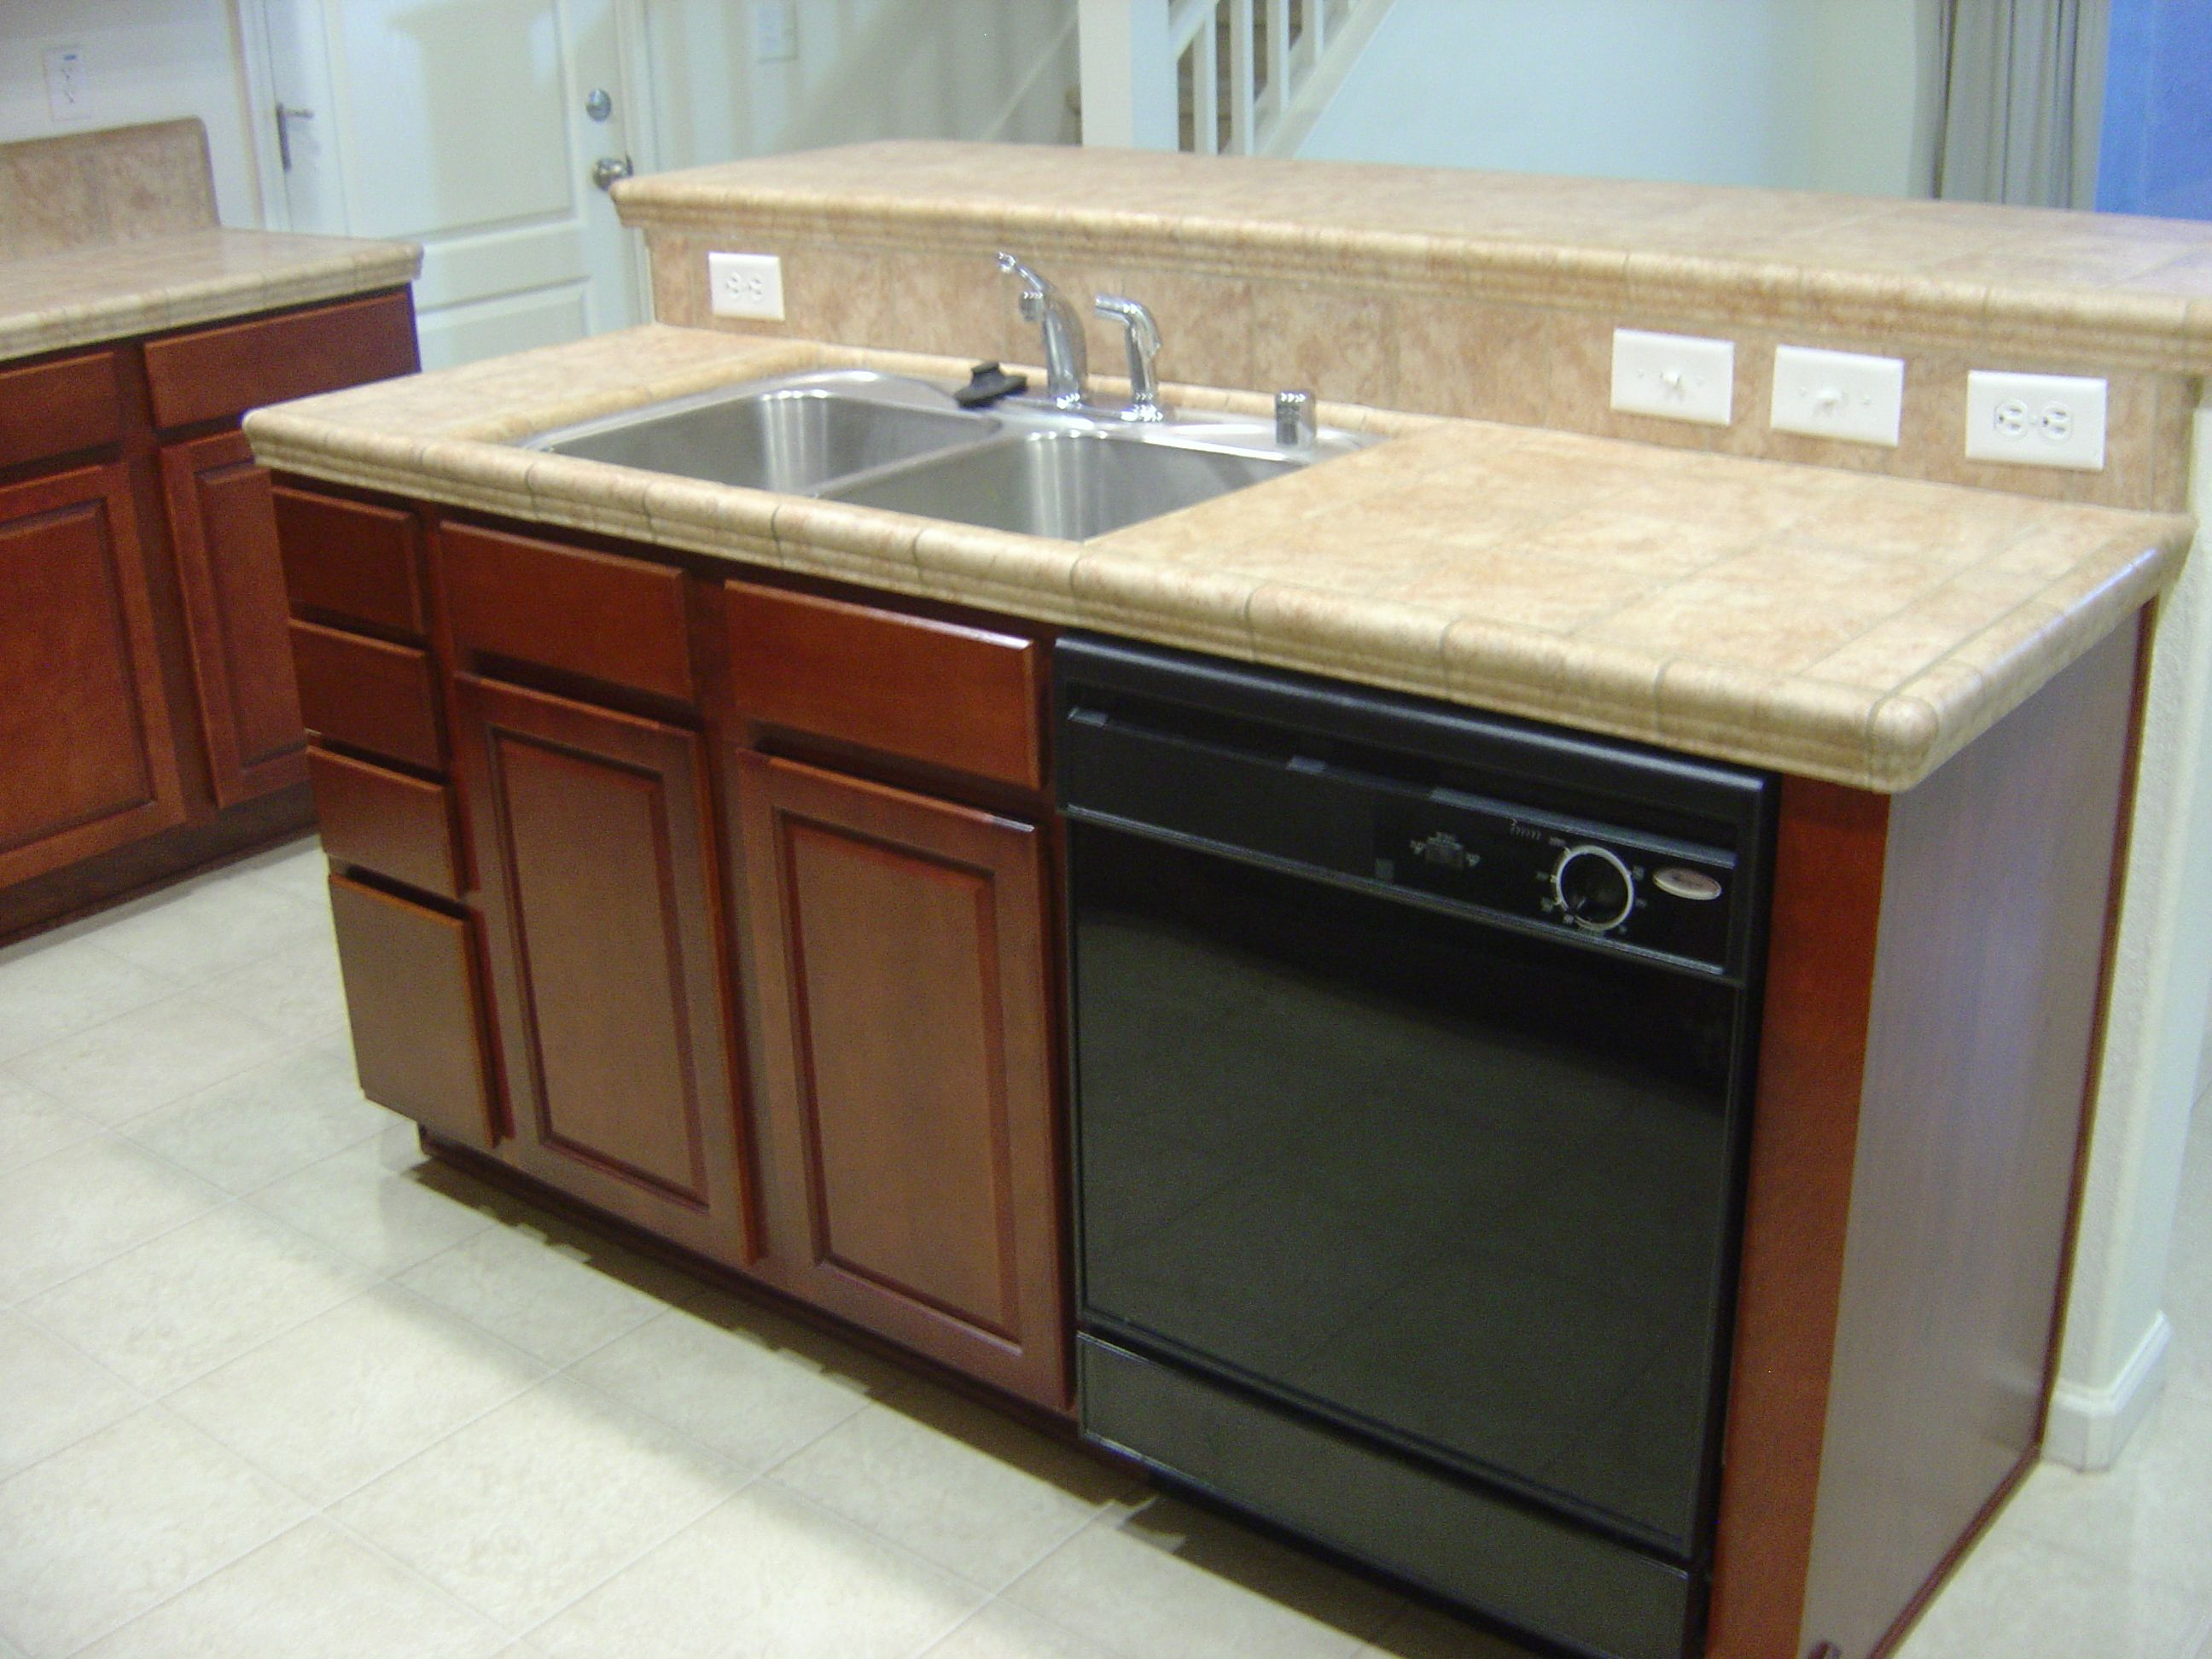 Favored Traditional Kitchen Ideas Added Small Kitchen Island With Sink White Marble Top K Small Apartment Kitchen Kitchen Island Plans Kitchen Island With Sink